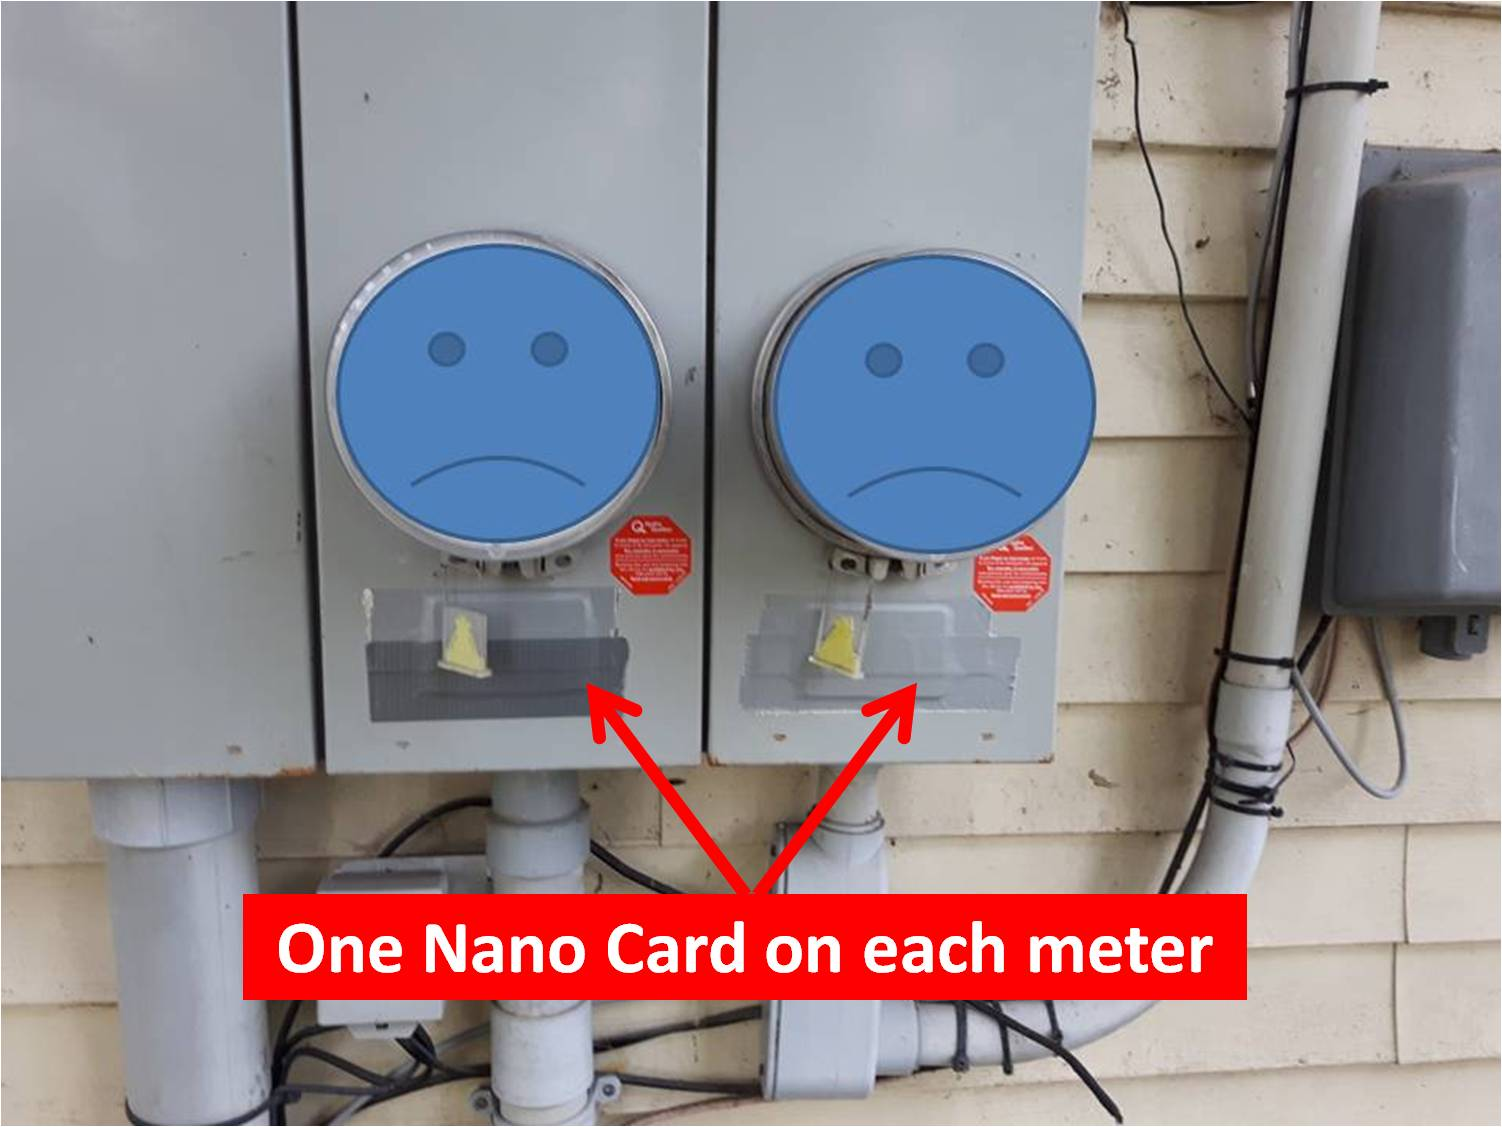 Nano card on smart meter